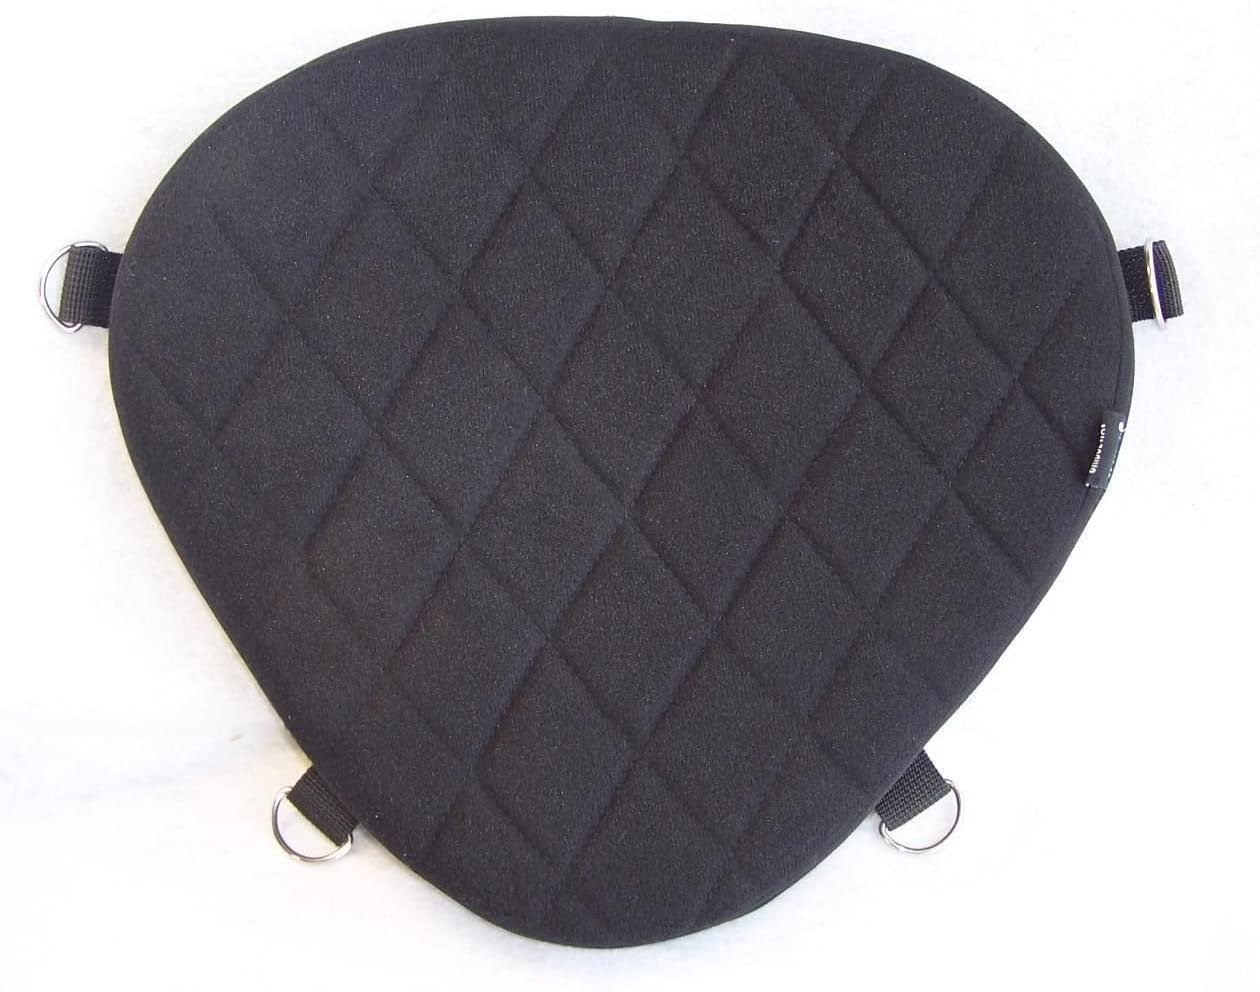 Motorcycle Gel Pad Driver Seat Cushion for Harley Davidson XL1200R Sportster Roadster